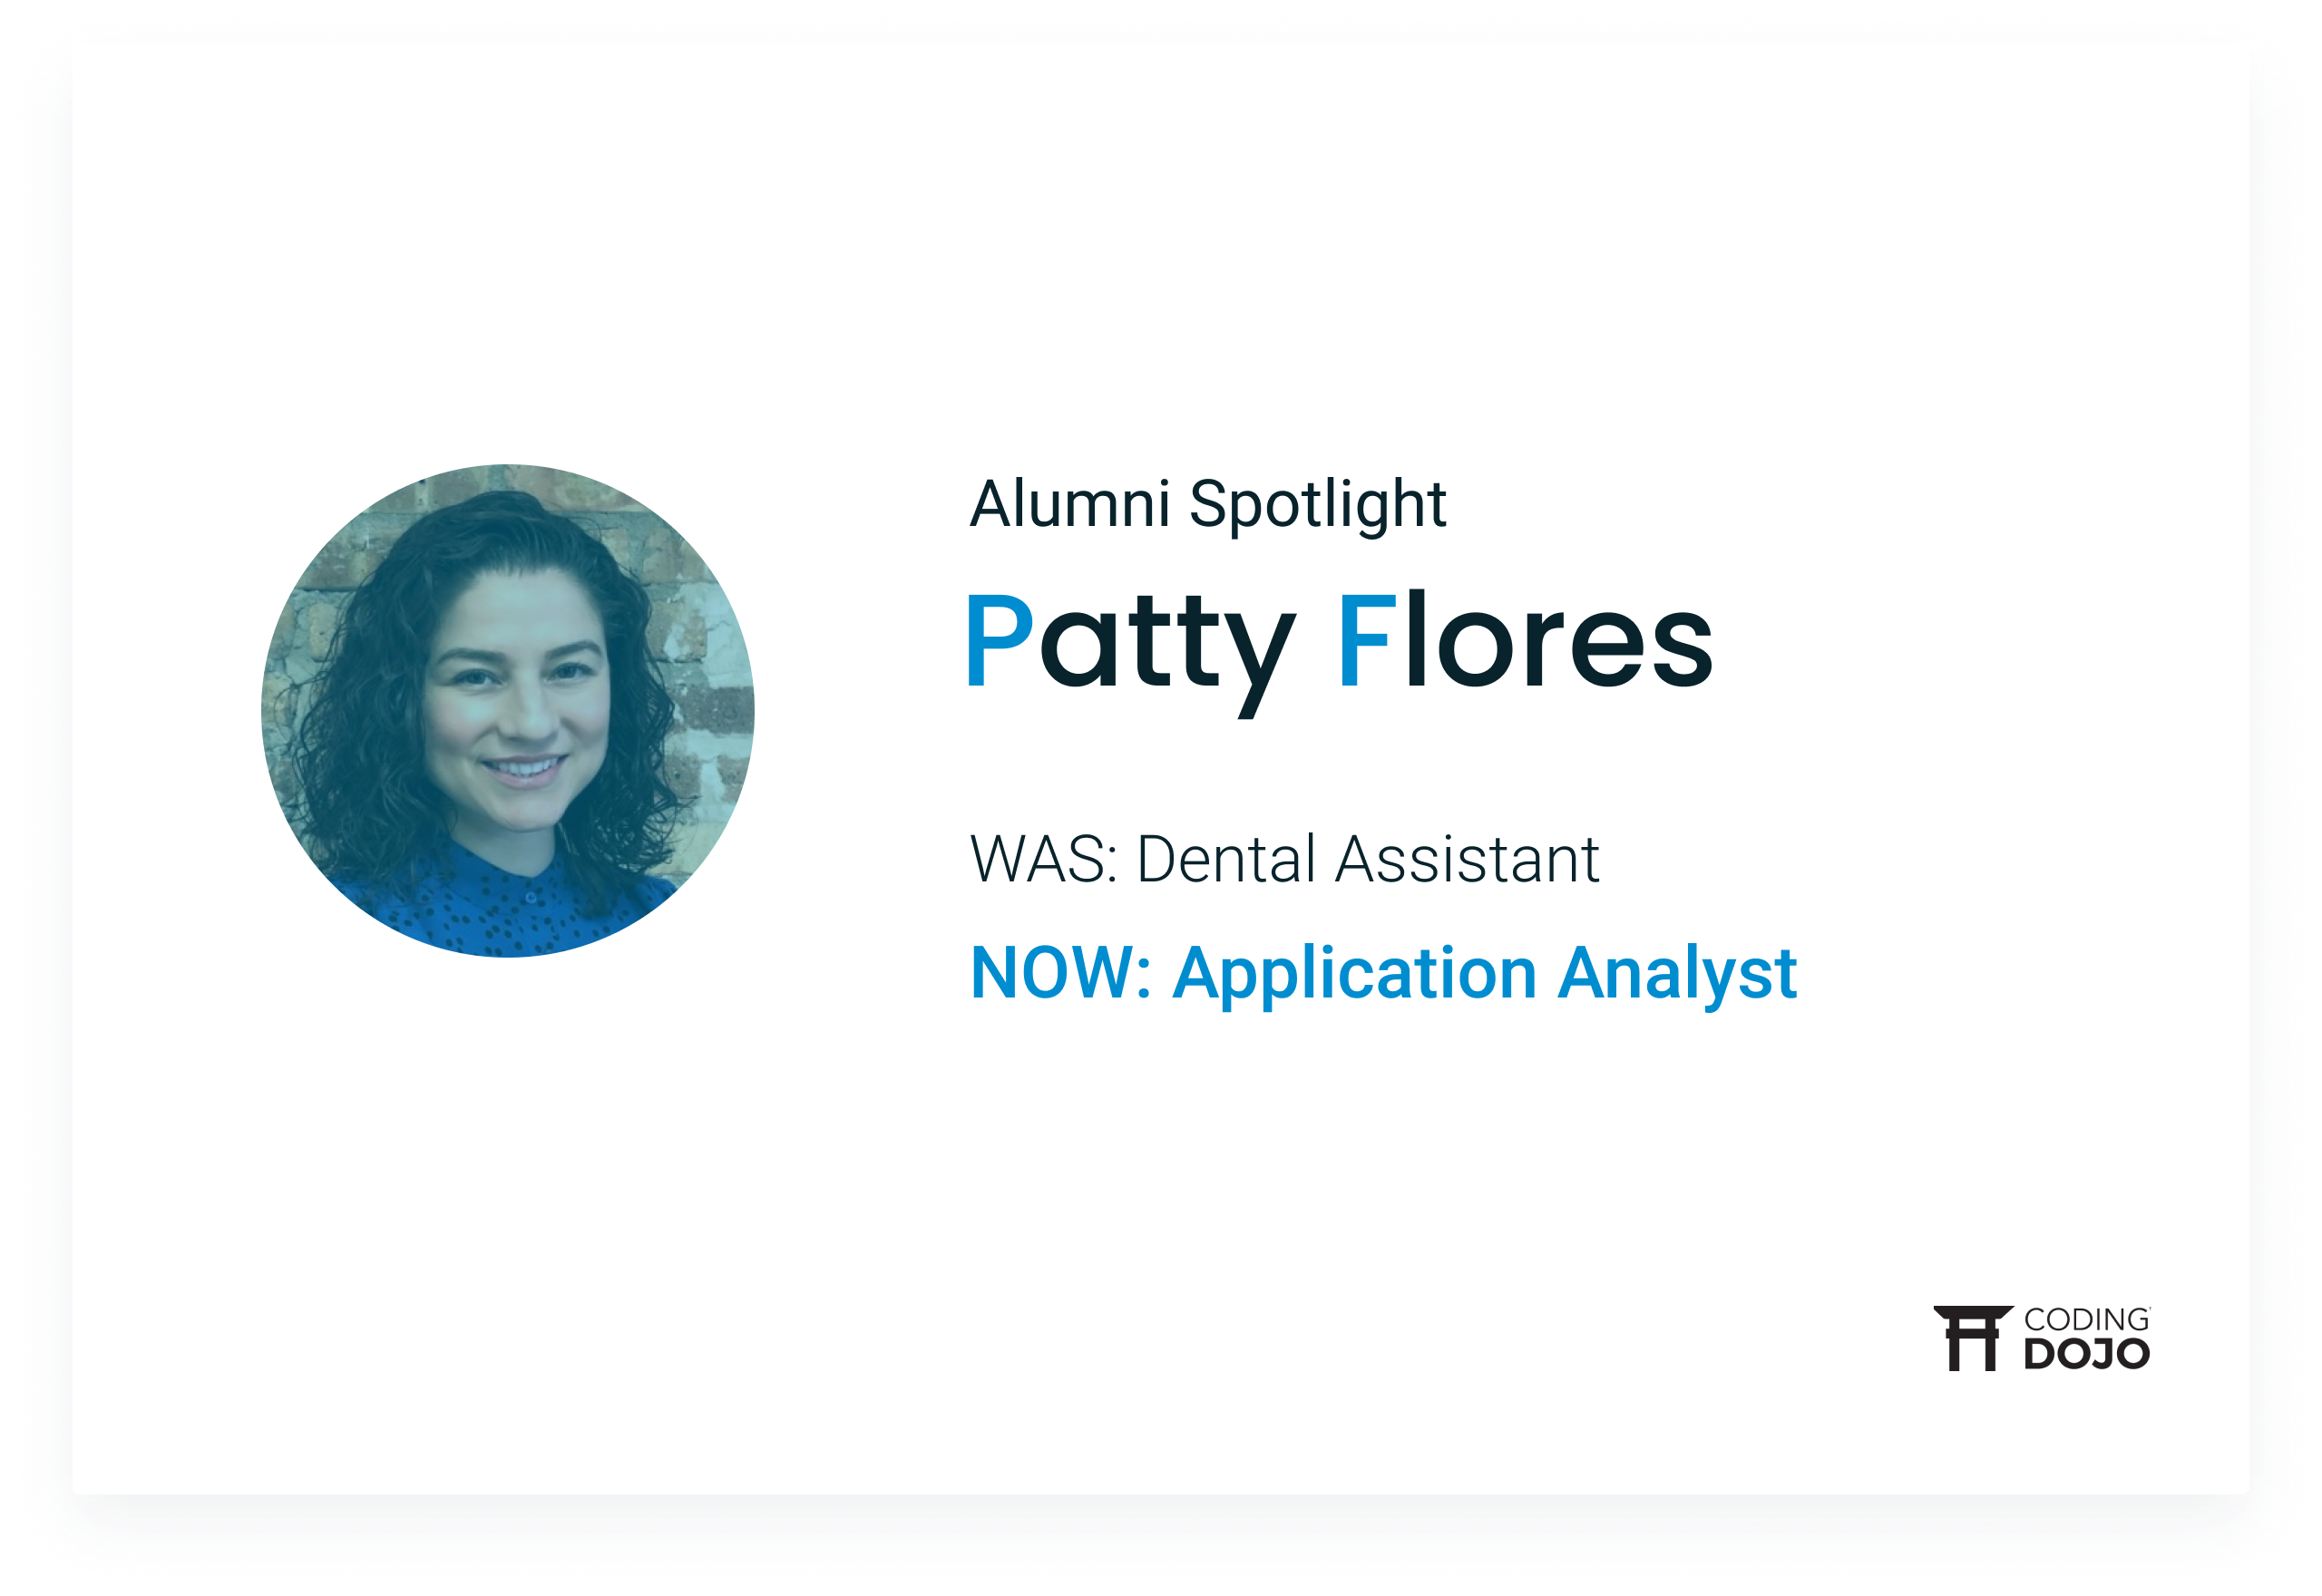 From Assisting Dentists To Deploying Applications | The Story of Chicago Alumni Patty Flores